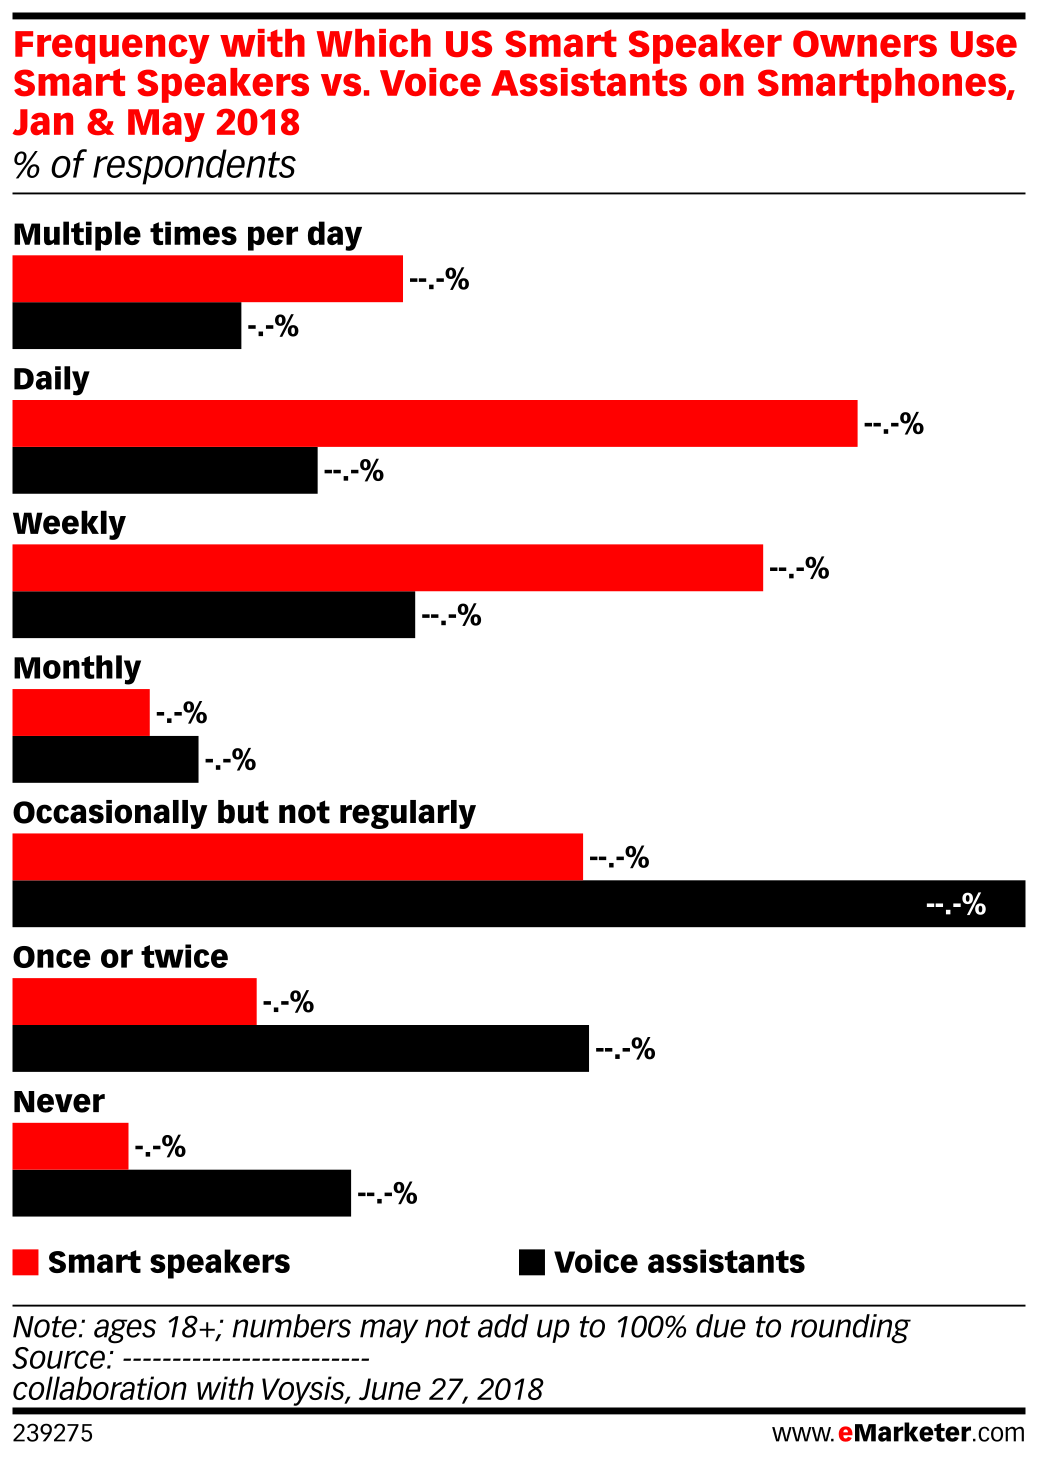 Frequency with Which US Smart Speaker Owners Use Smart Speakers vs. Voice Assistants on Smartphones, Jan & May 2018 (% of respondents)